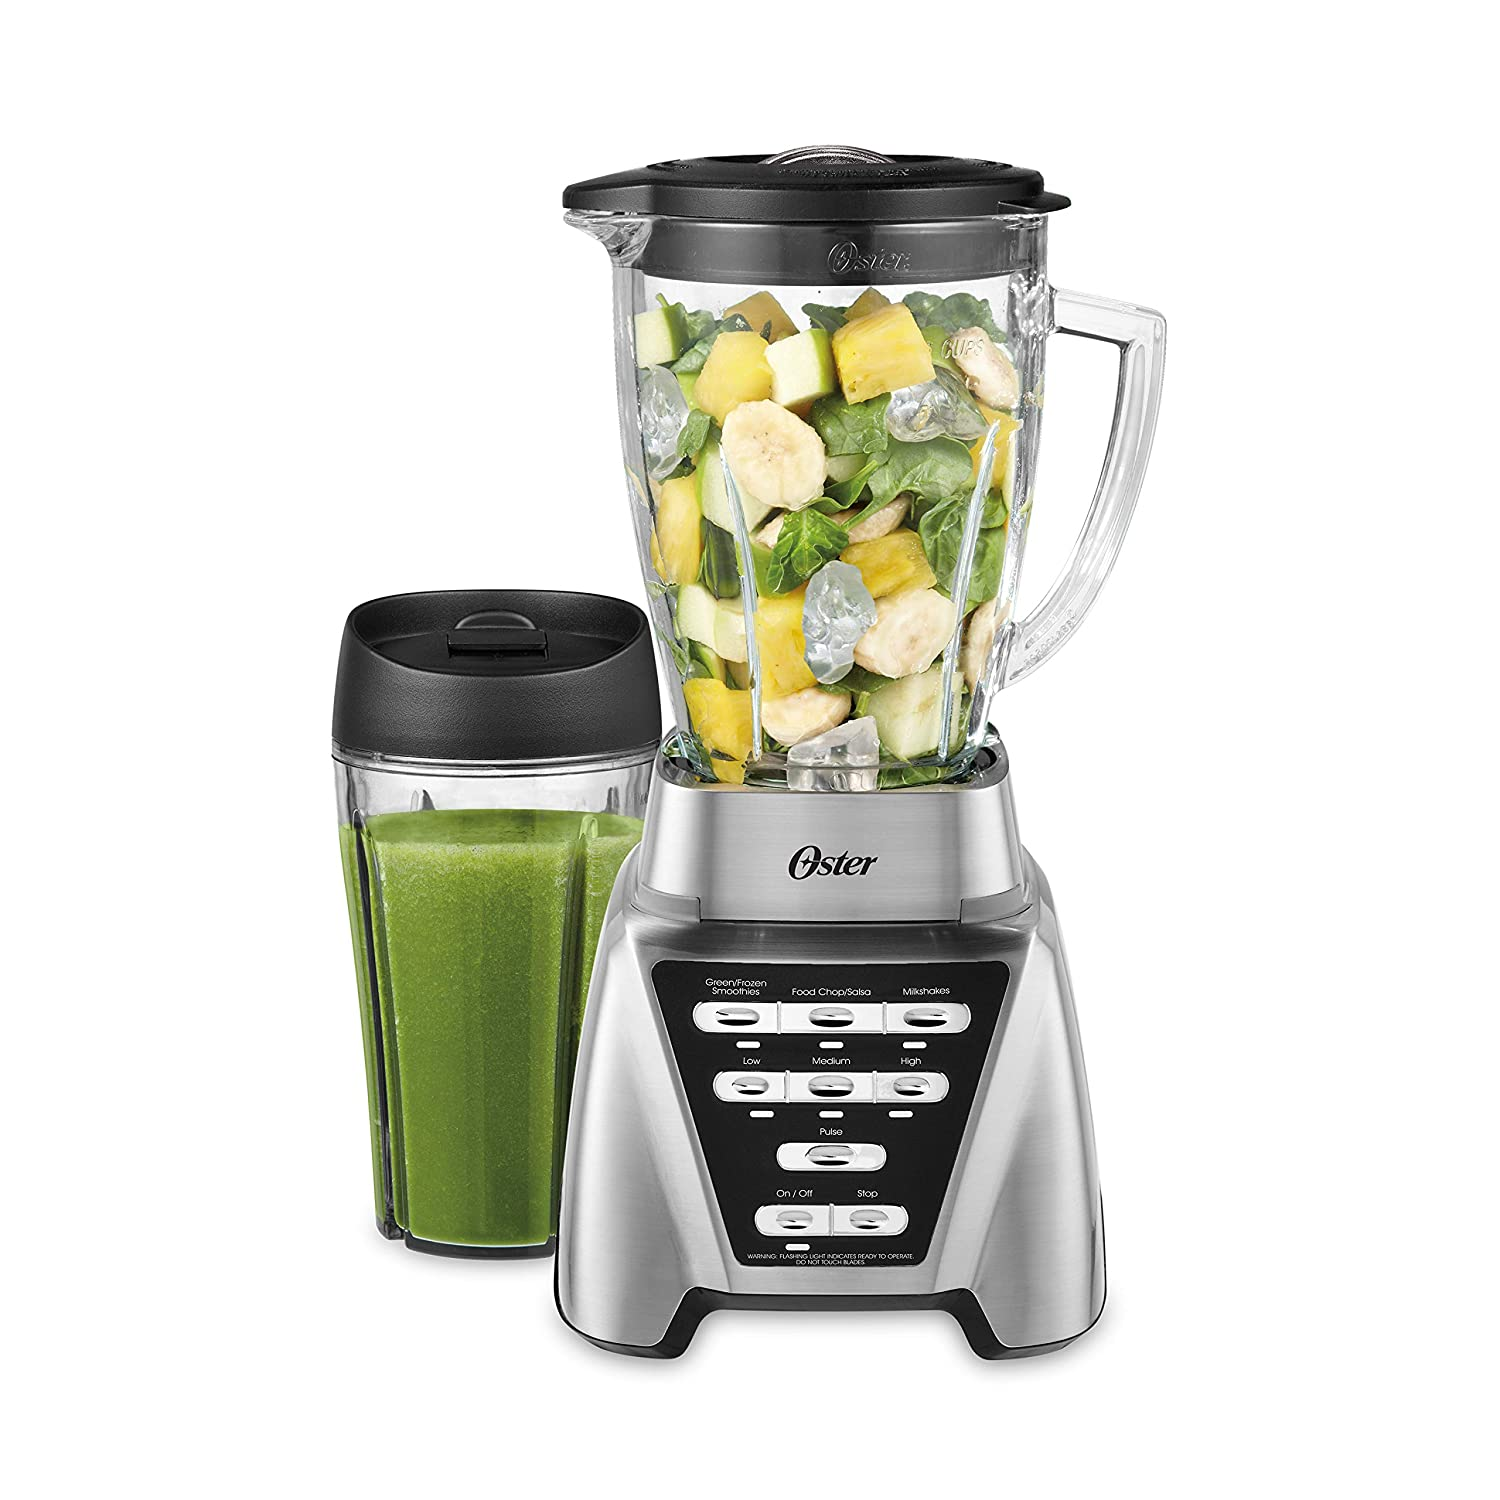 Top 10 Best Blender for Smoothies with Ice - Buyer's Guide 6